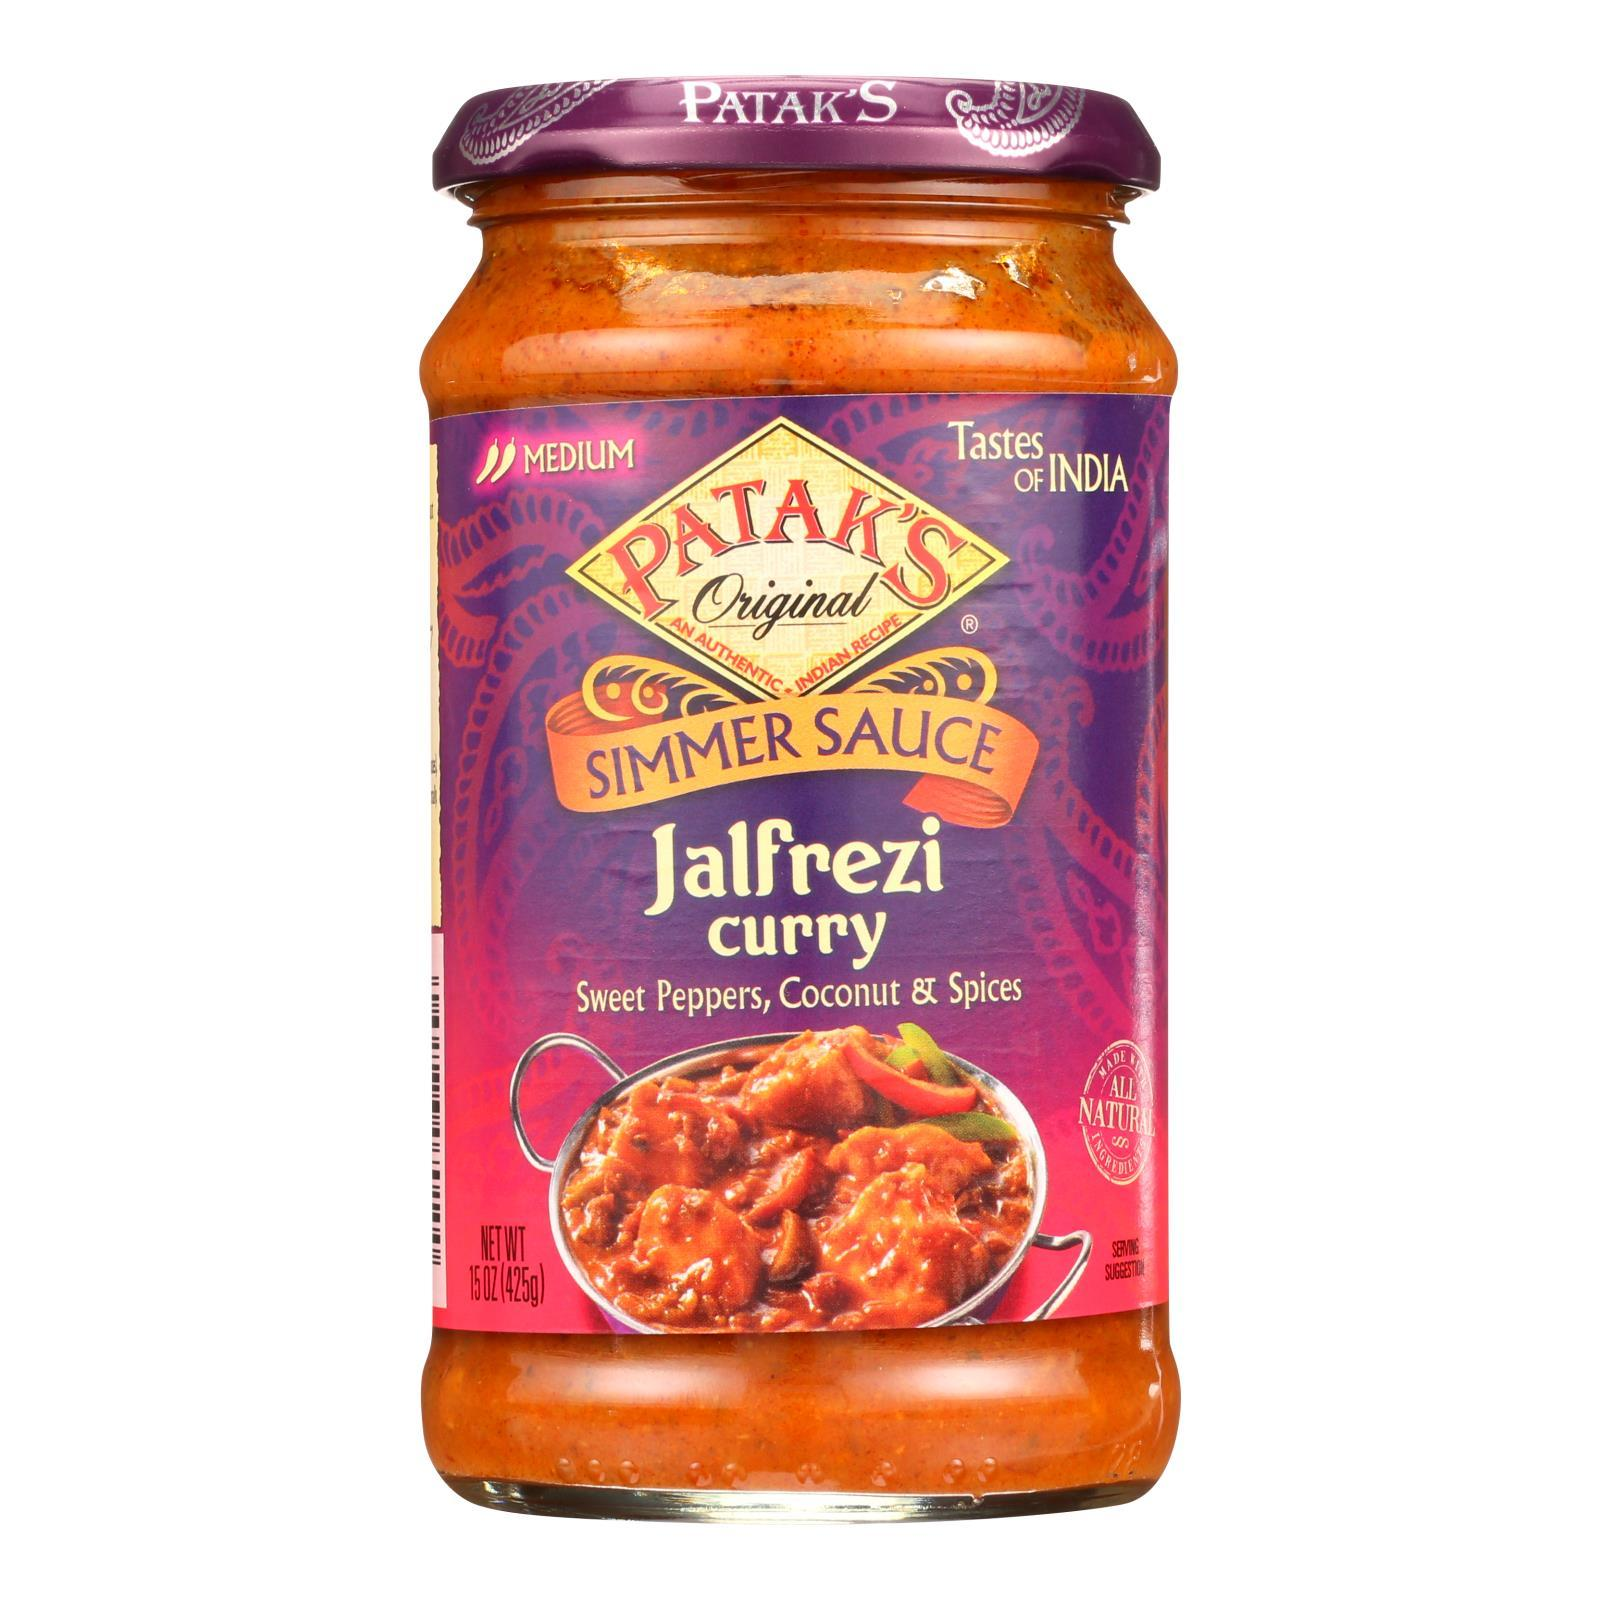 Pataks Simmer Sauce - Jalfrezi Curry - Medium - 15 Oz - Case Of 6 - BeeGreen